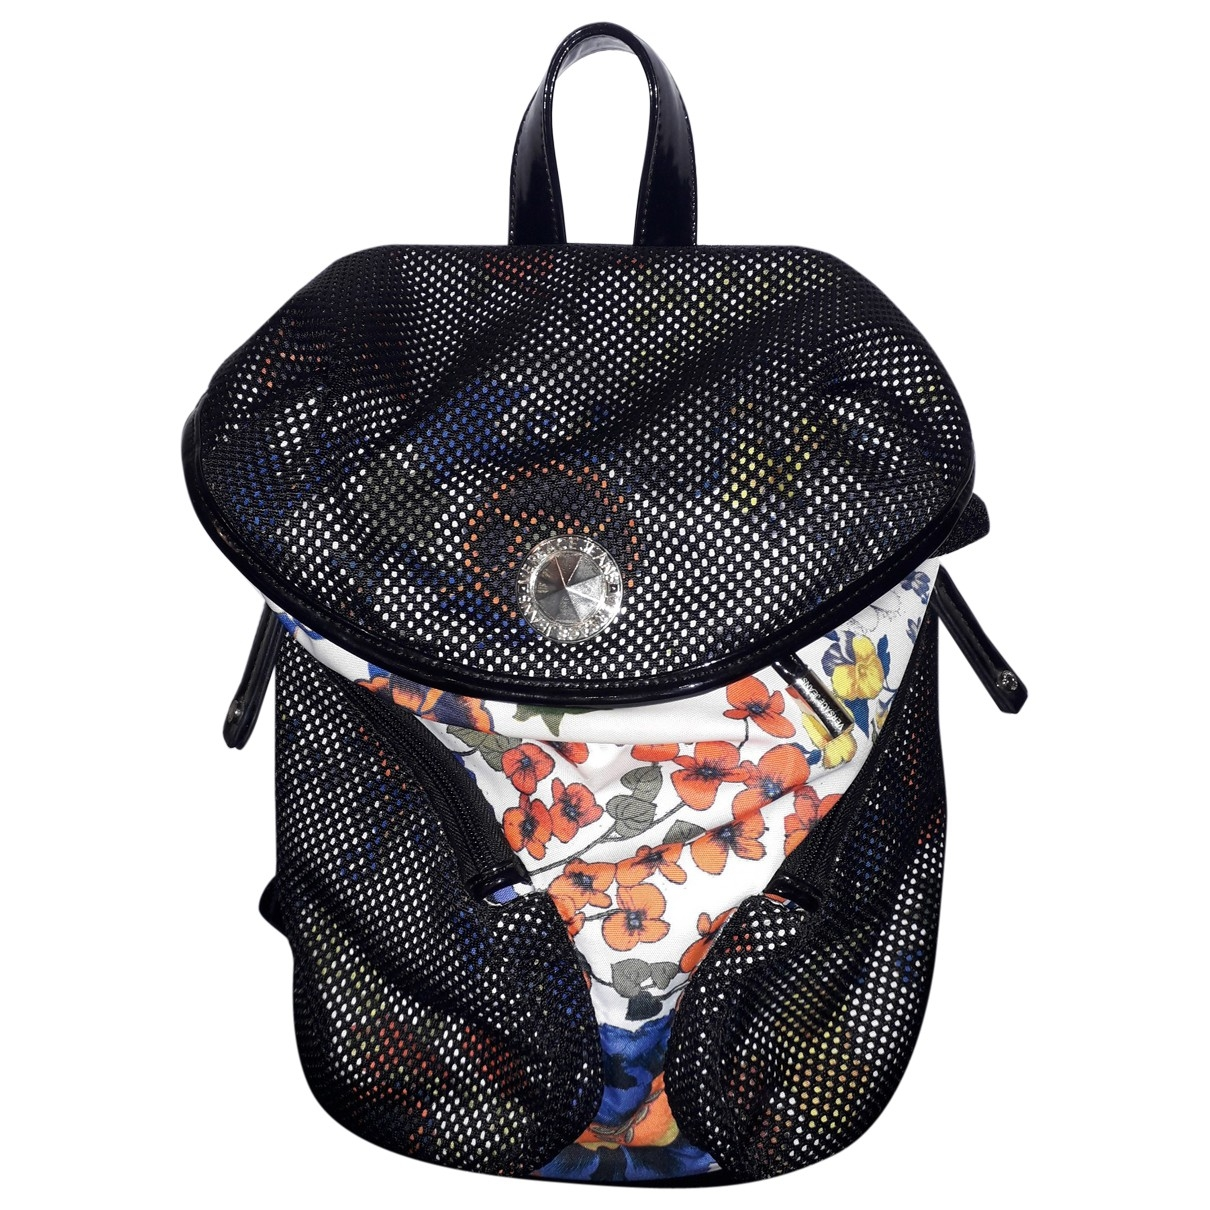 Versace Jeans \N Multicolour Patent leather backpack for Women \N